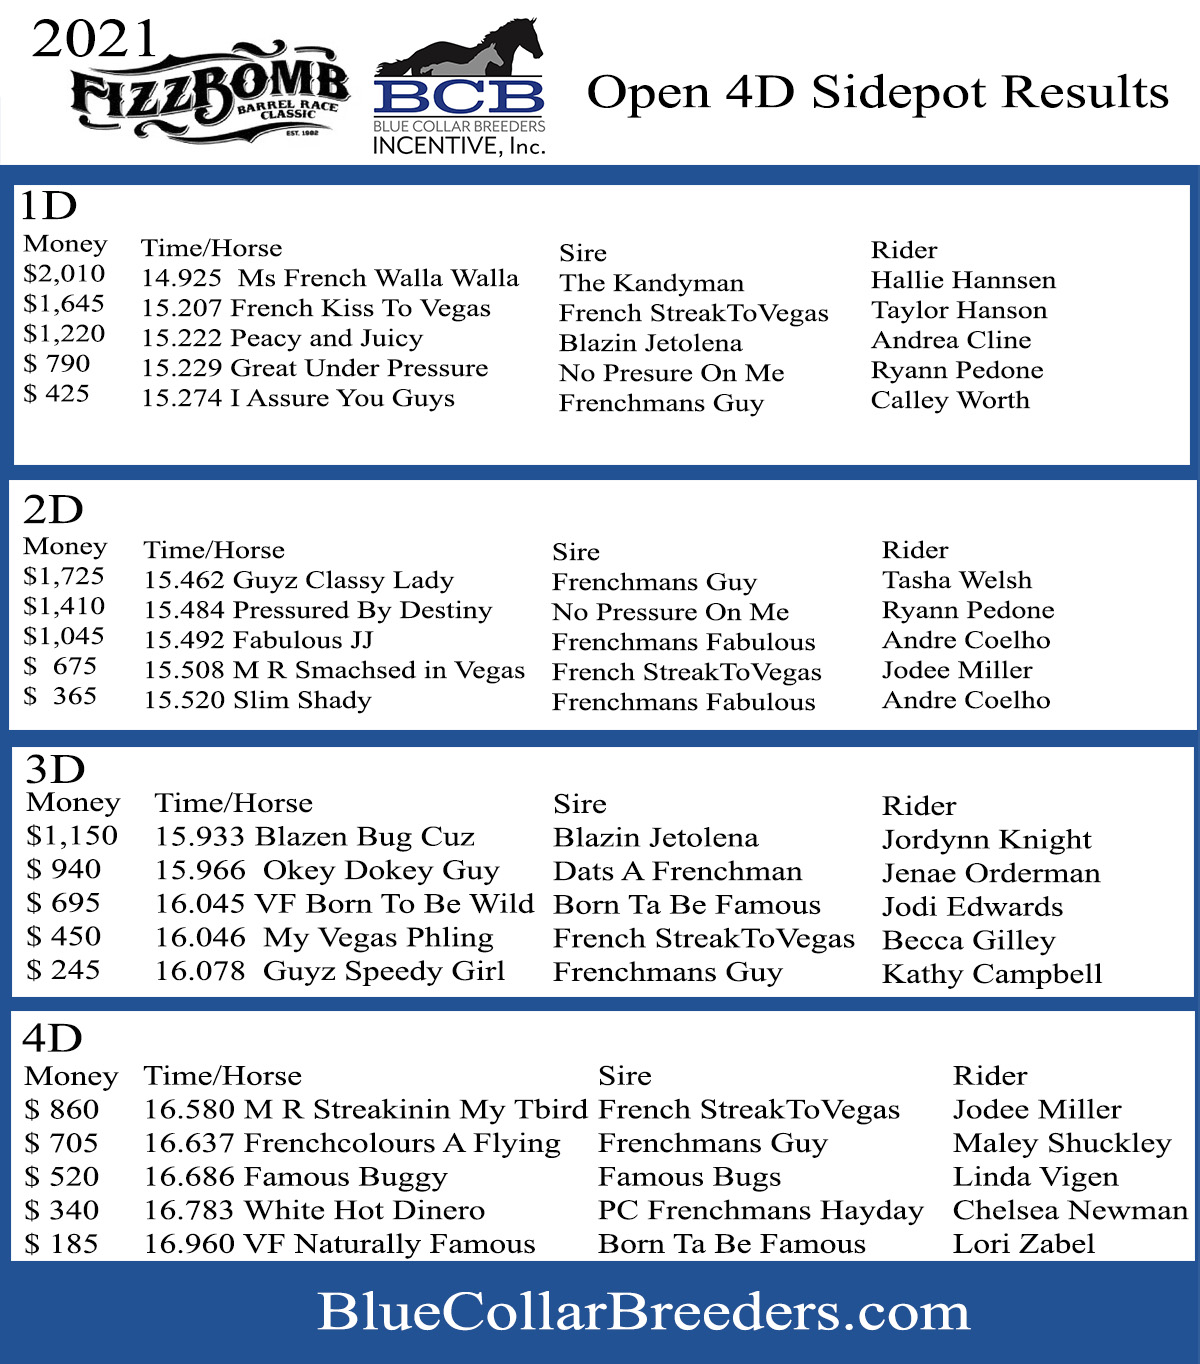 2021 Blue Collar Breeders Fizz Bomb Classic Open 4D Sidepot Results.  Congratulations to all the winners!